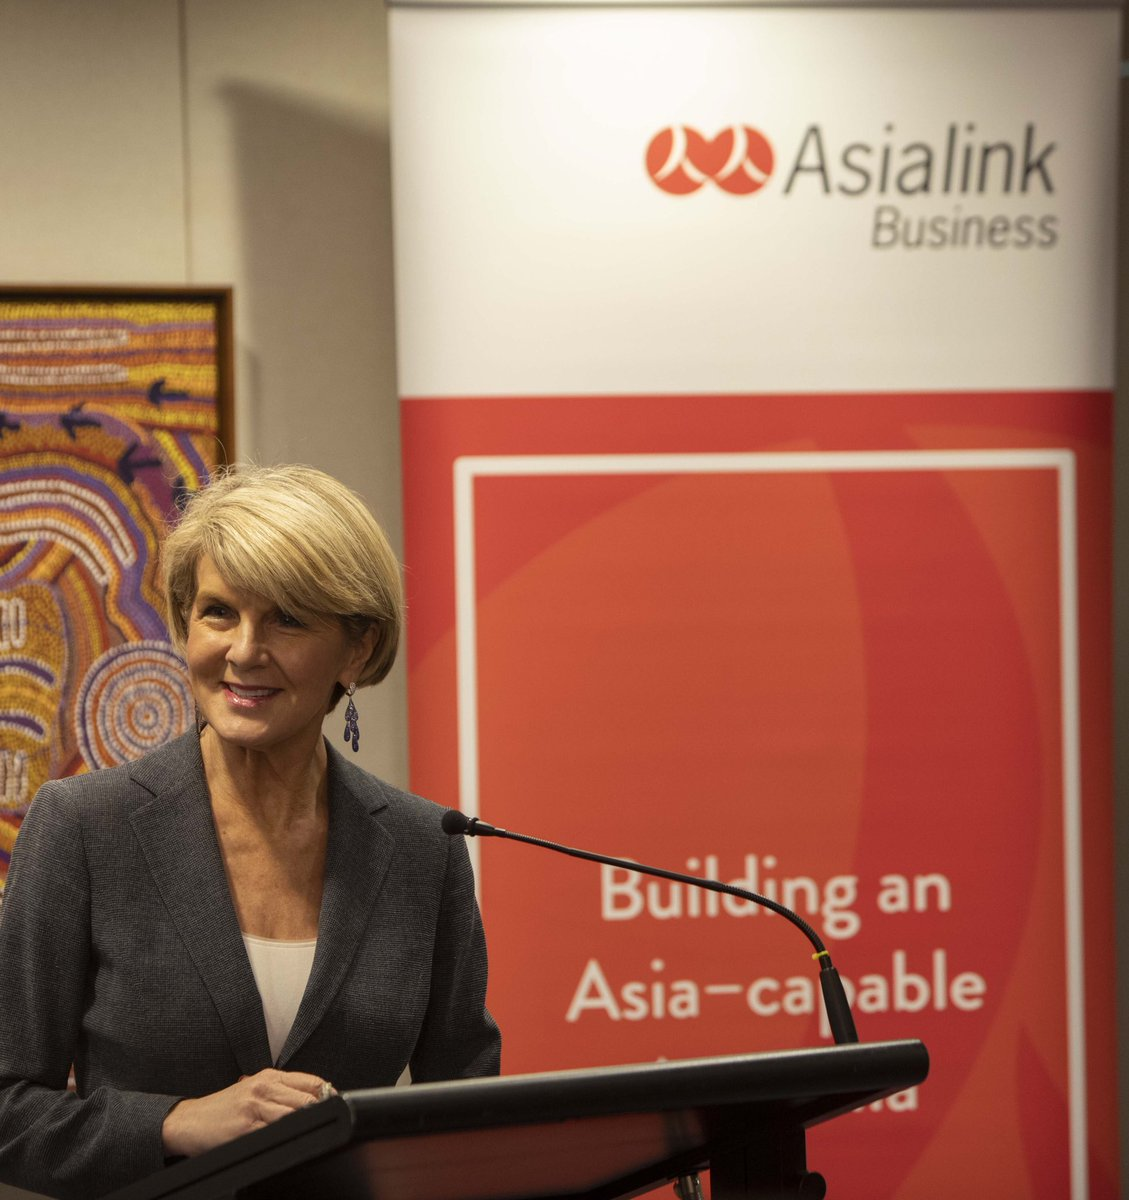 Addressing @_Asialink_ Emerging Leaders event today. We are committed to Indo-Pacific region through increasing people-to-people links with important govt intiatives such as @NewColomboPlan - @Aust_Parliament #auspol #AsialinkLeaders 🌏🇦🇺